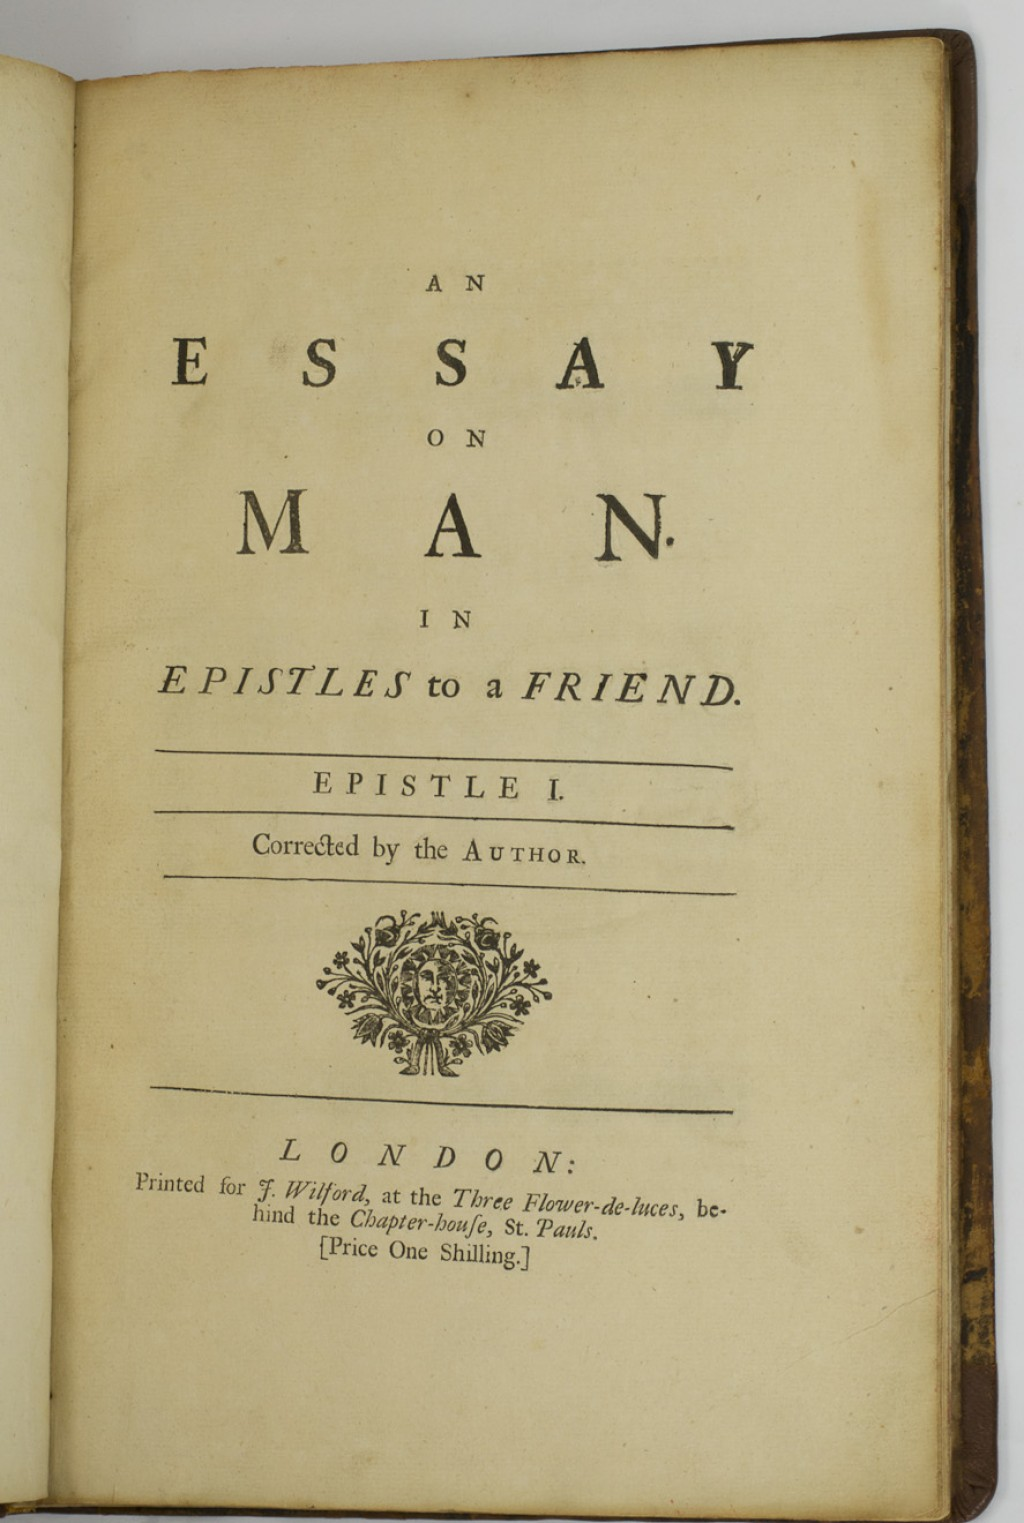 002 Essay On Man Example 65395 3 Stirring By Alexander Pope Analysis Pdf Critical Manners Reveal Character Large